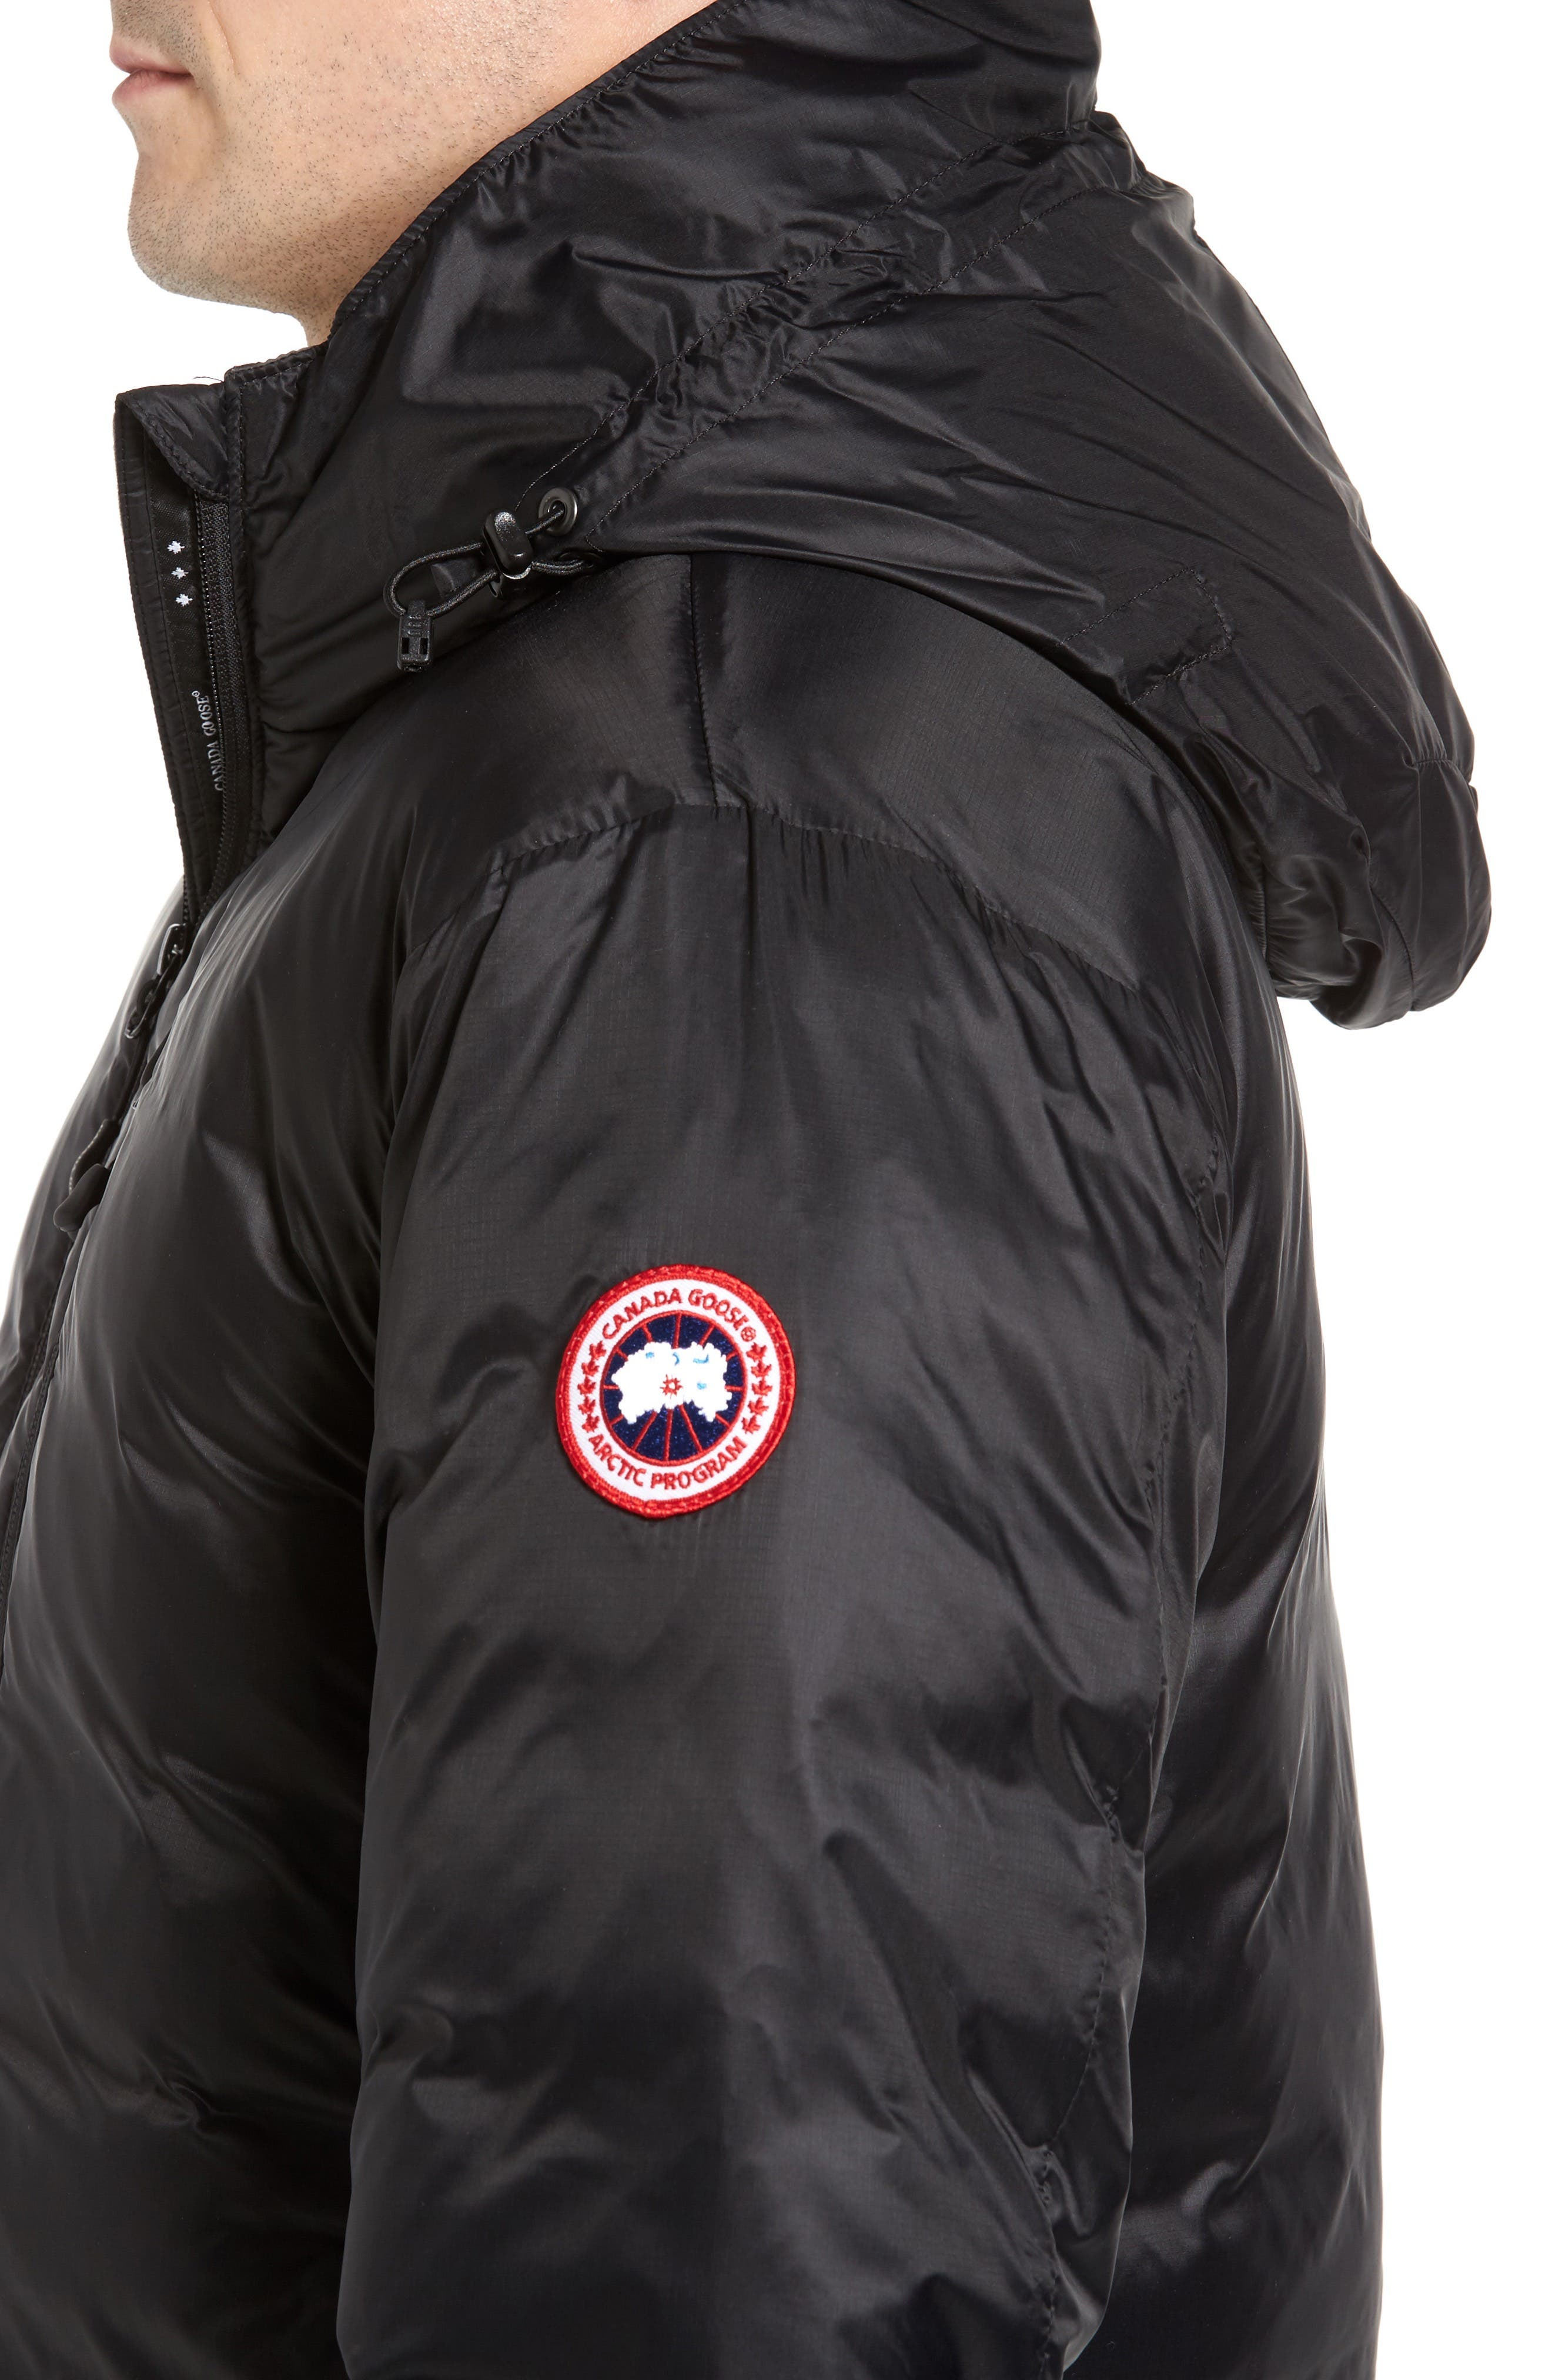 Lodge Packable Down Jacket,                             Alternate thumbnail 4, color,                             Black/ Black